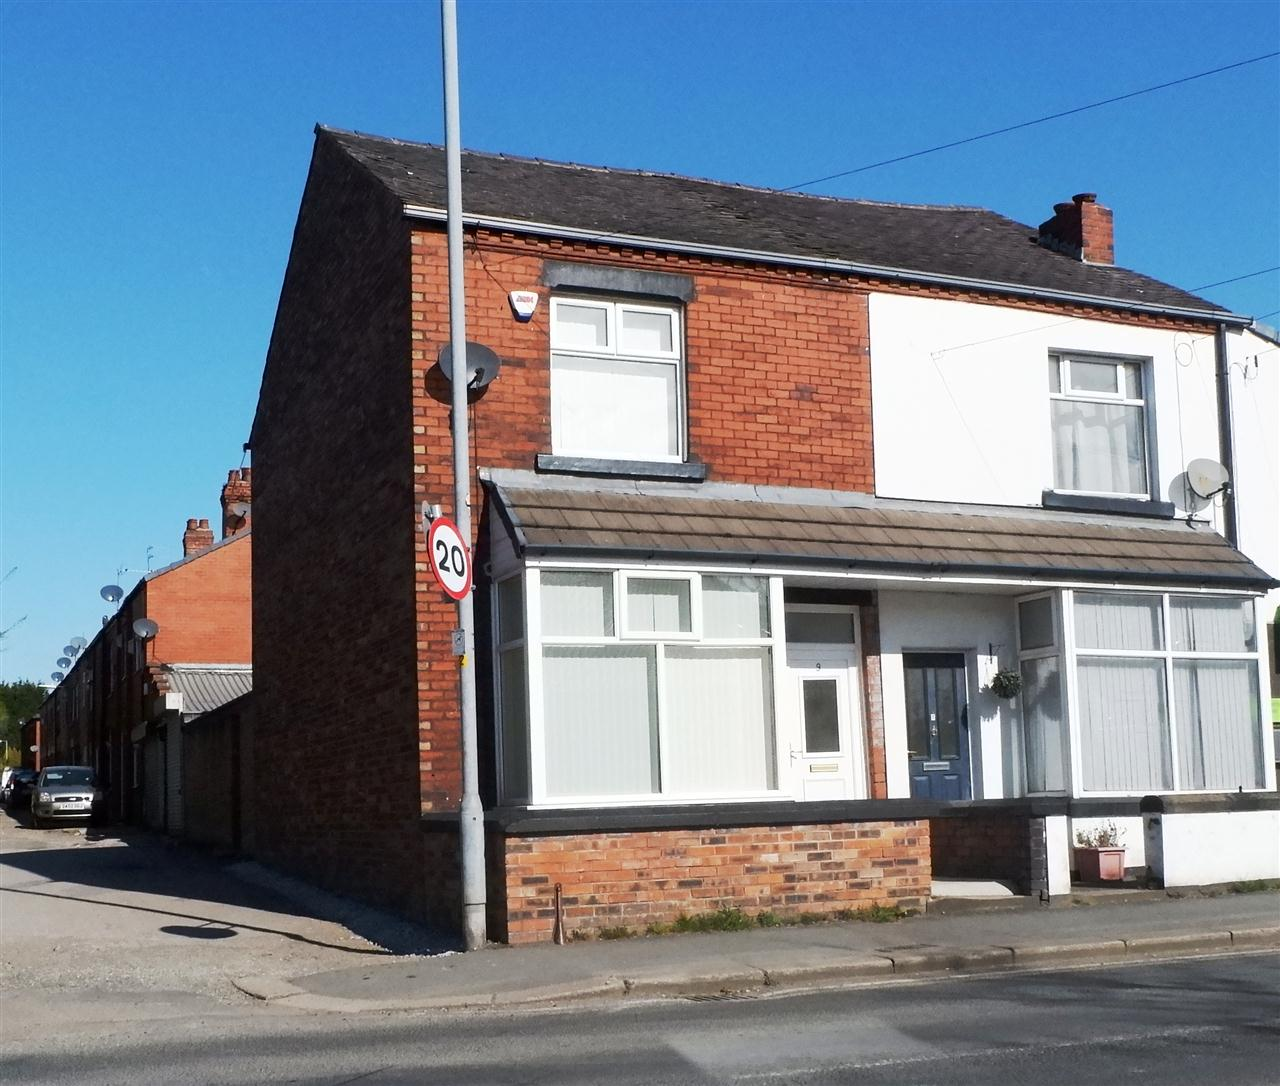 3 bed end of terrace for sale in Mason St, Horwich - Property Image 1